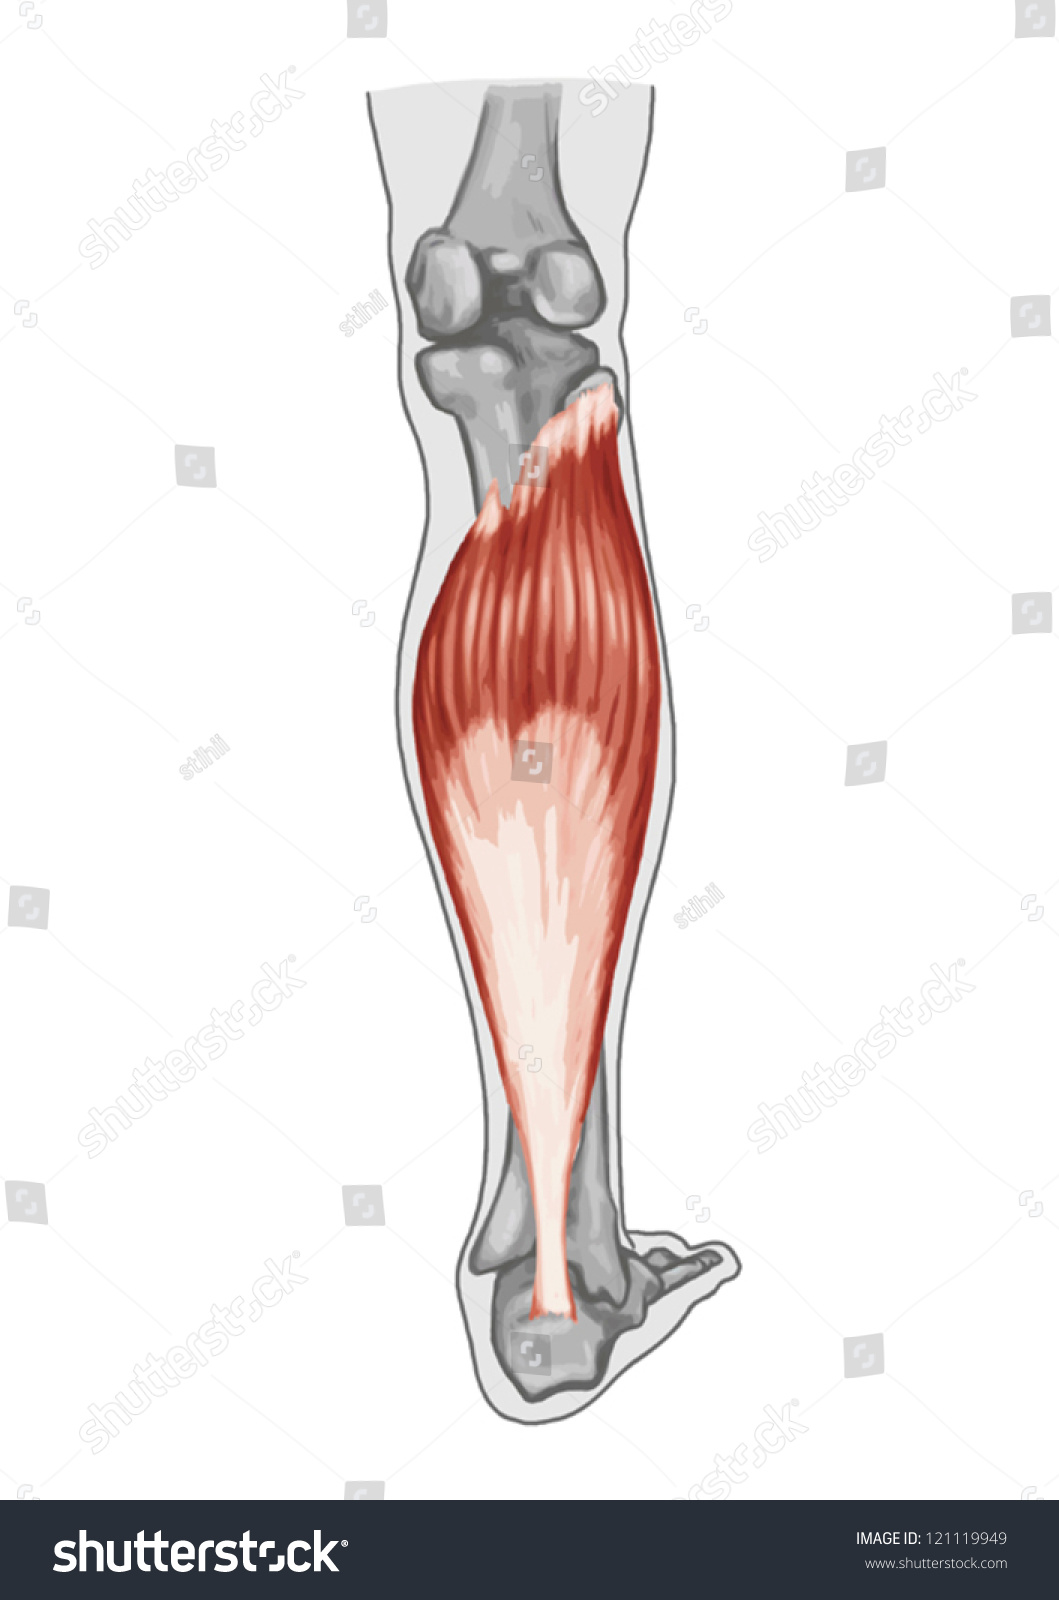 Soleus Anatomy Muscular System Extensor Muscle Stock Vector HD ...